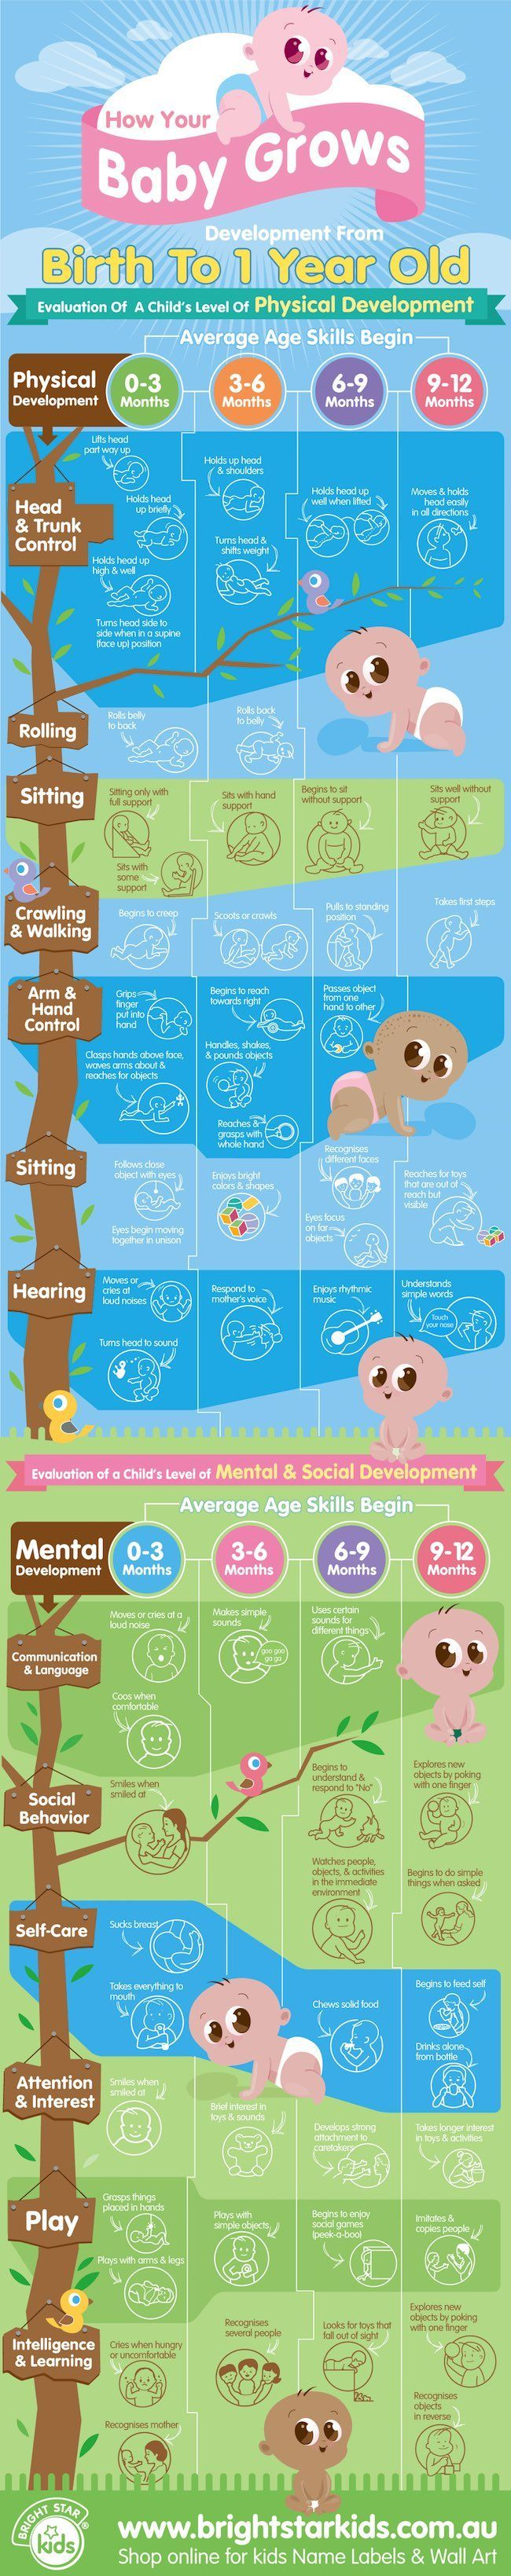 How your baby grows and develops chart from bright star kids here is fun and interesting infographic about baby development see all the changes your baby goes through from months old geenschuldenfo Choice Image